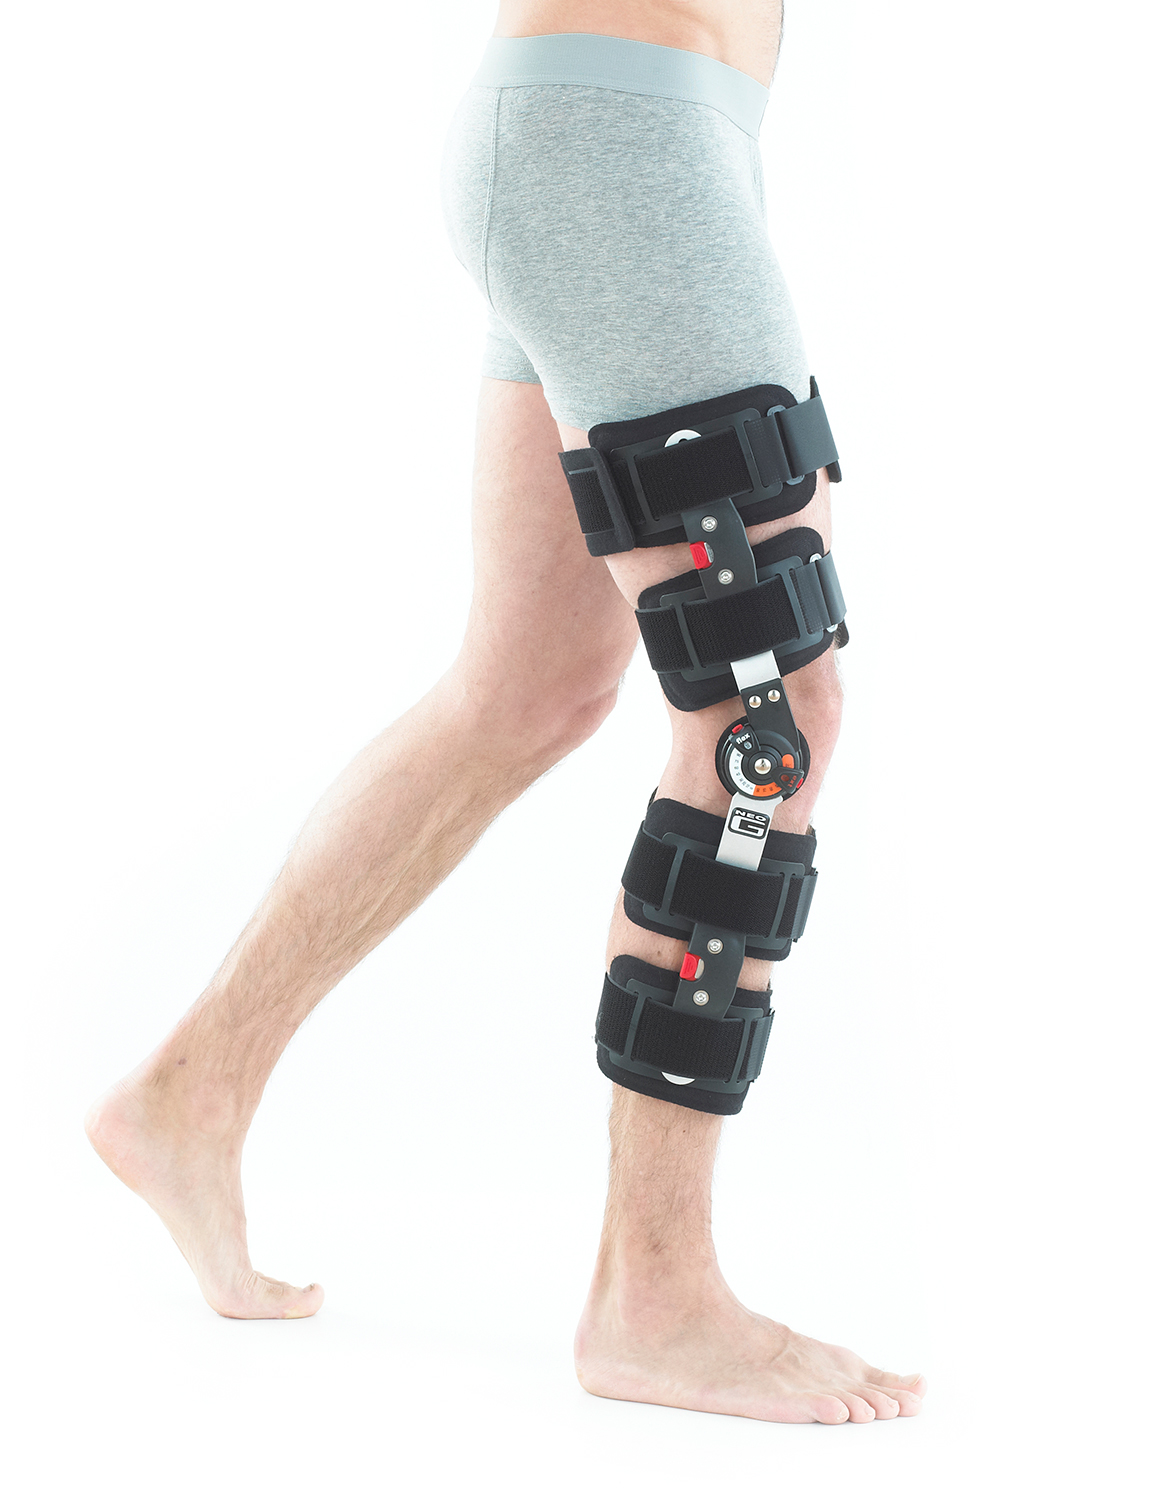 858 - POST OPERATIVE KNEE BRACE  The lightweight frame with adjustable comfort pads has 7 adjustable length levels, providing a customisable and optimum fit for best recovery. The support helps provide maximum joint protection and stability, making it suitable for use during rehabilitation following trauma or surgery.